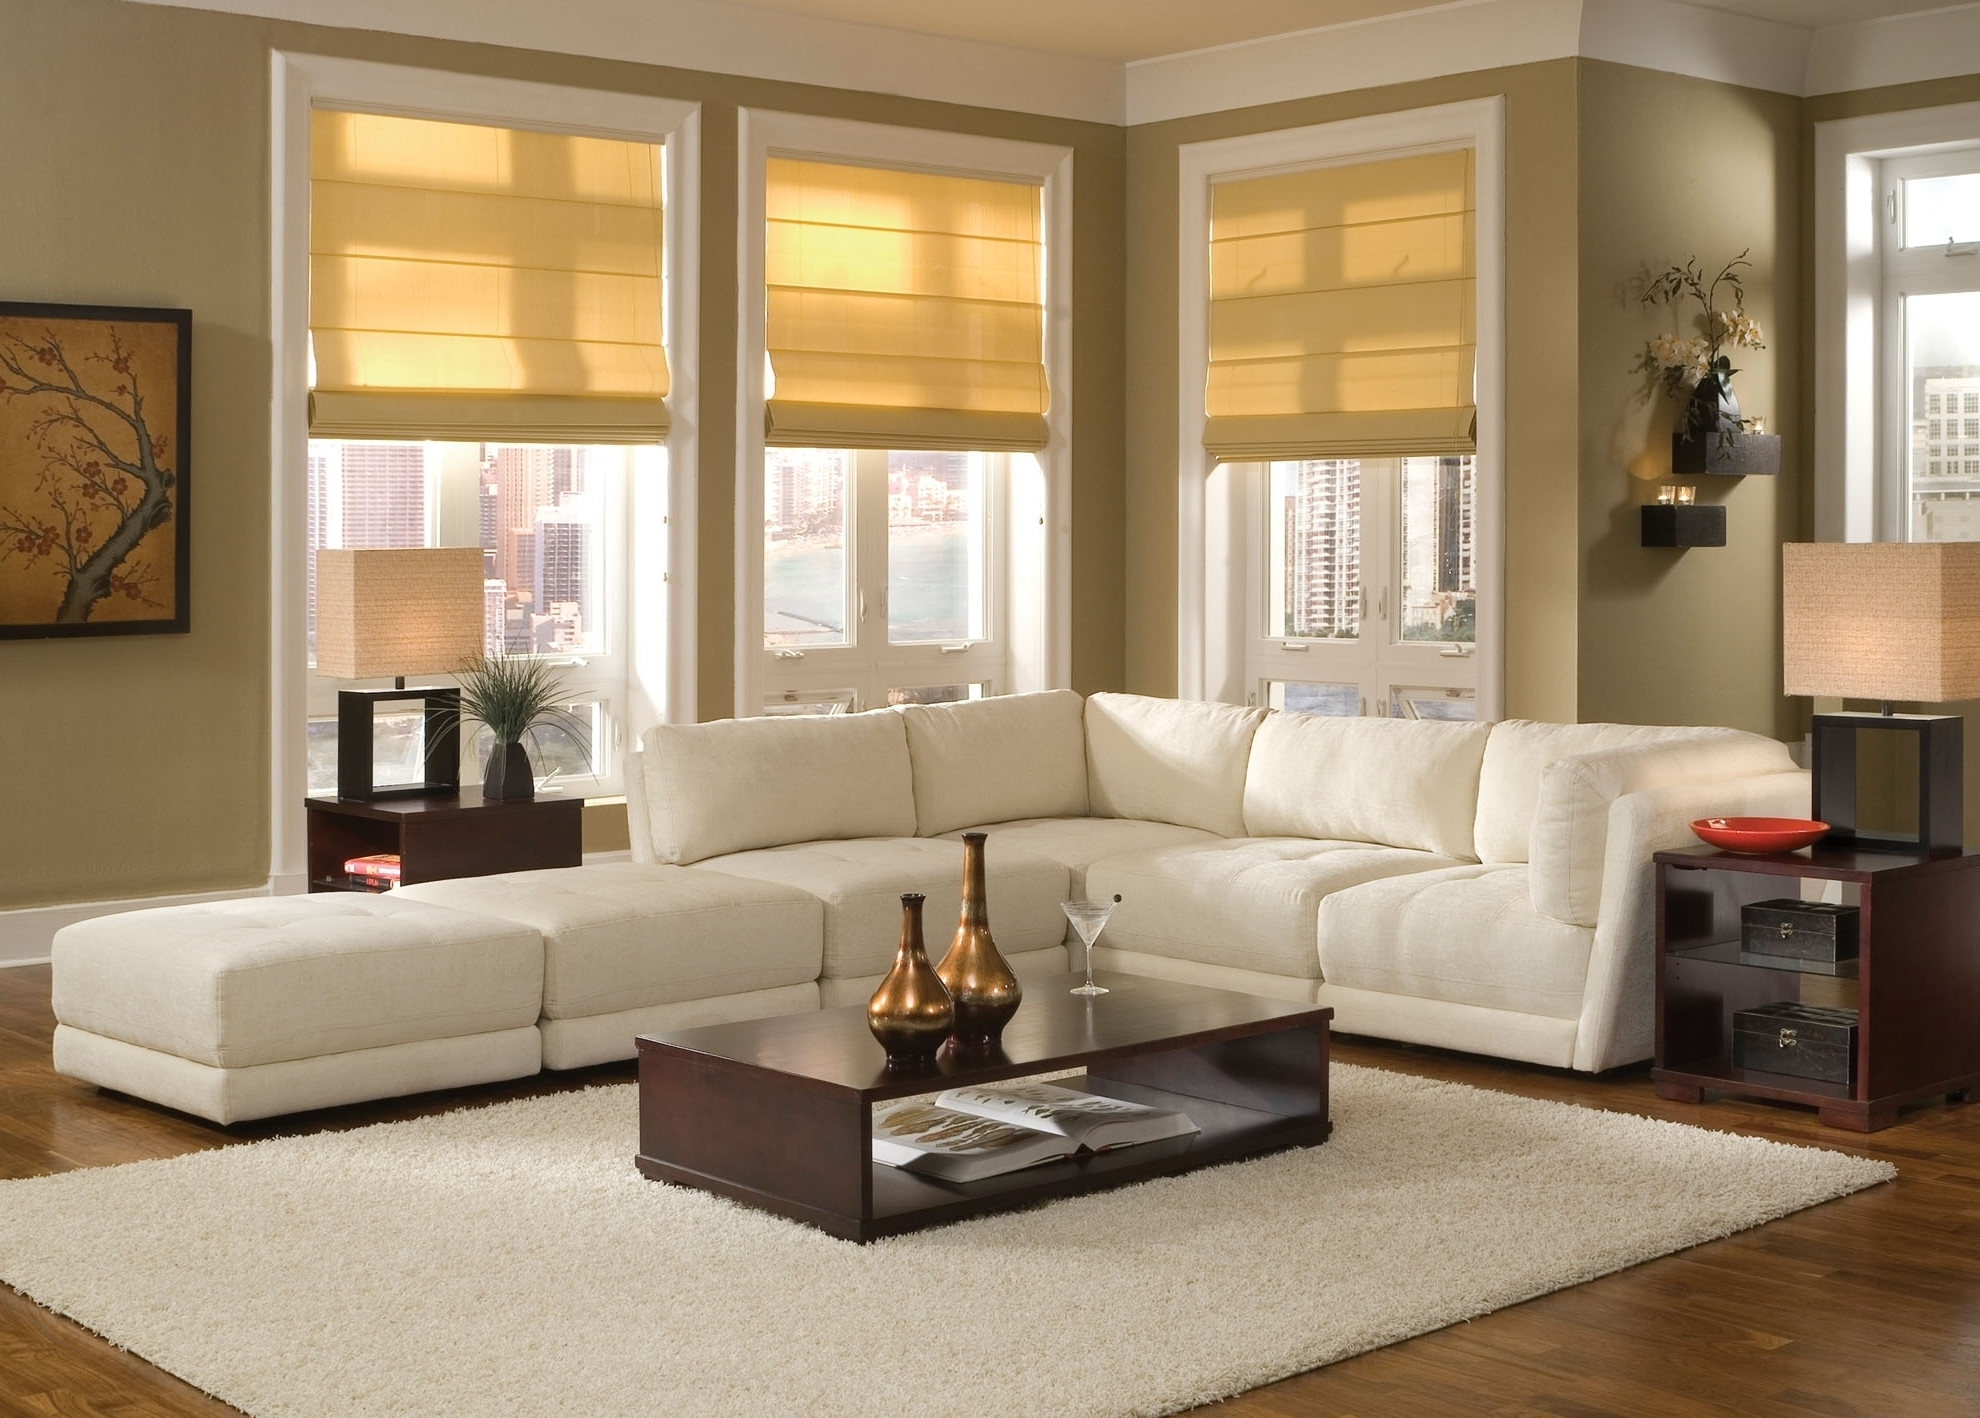 2017 Sectional Sofas For Small Living Rooms Throughout Furniture Arrangement Ideas For Small Living Rooms (View 1 of 15)